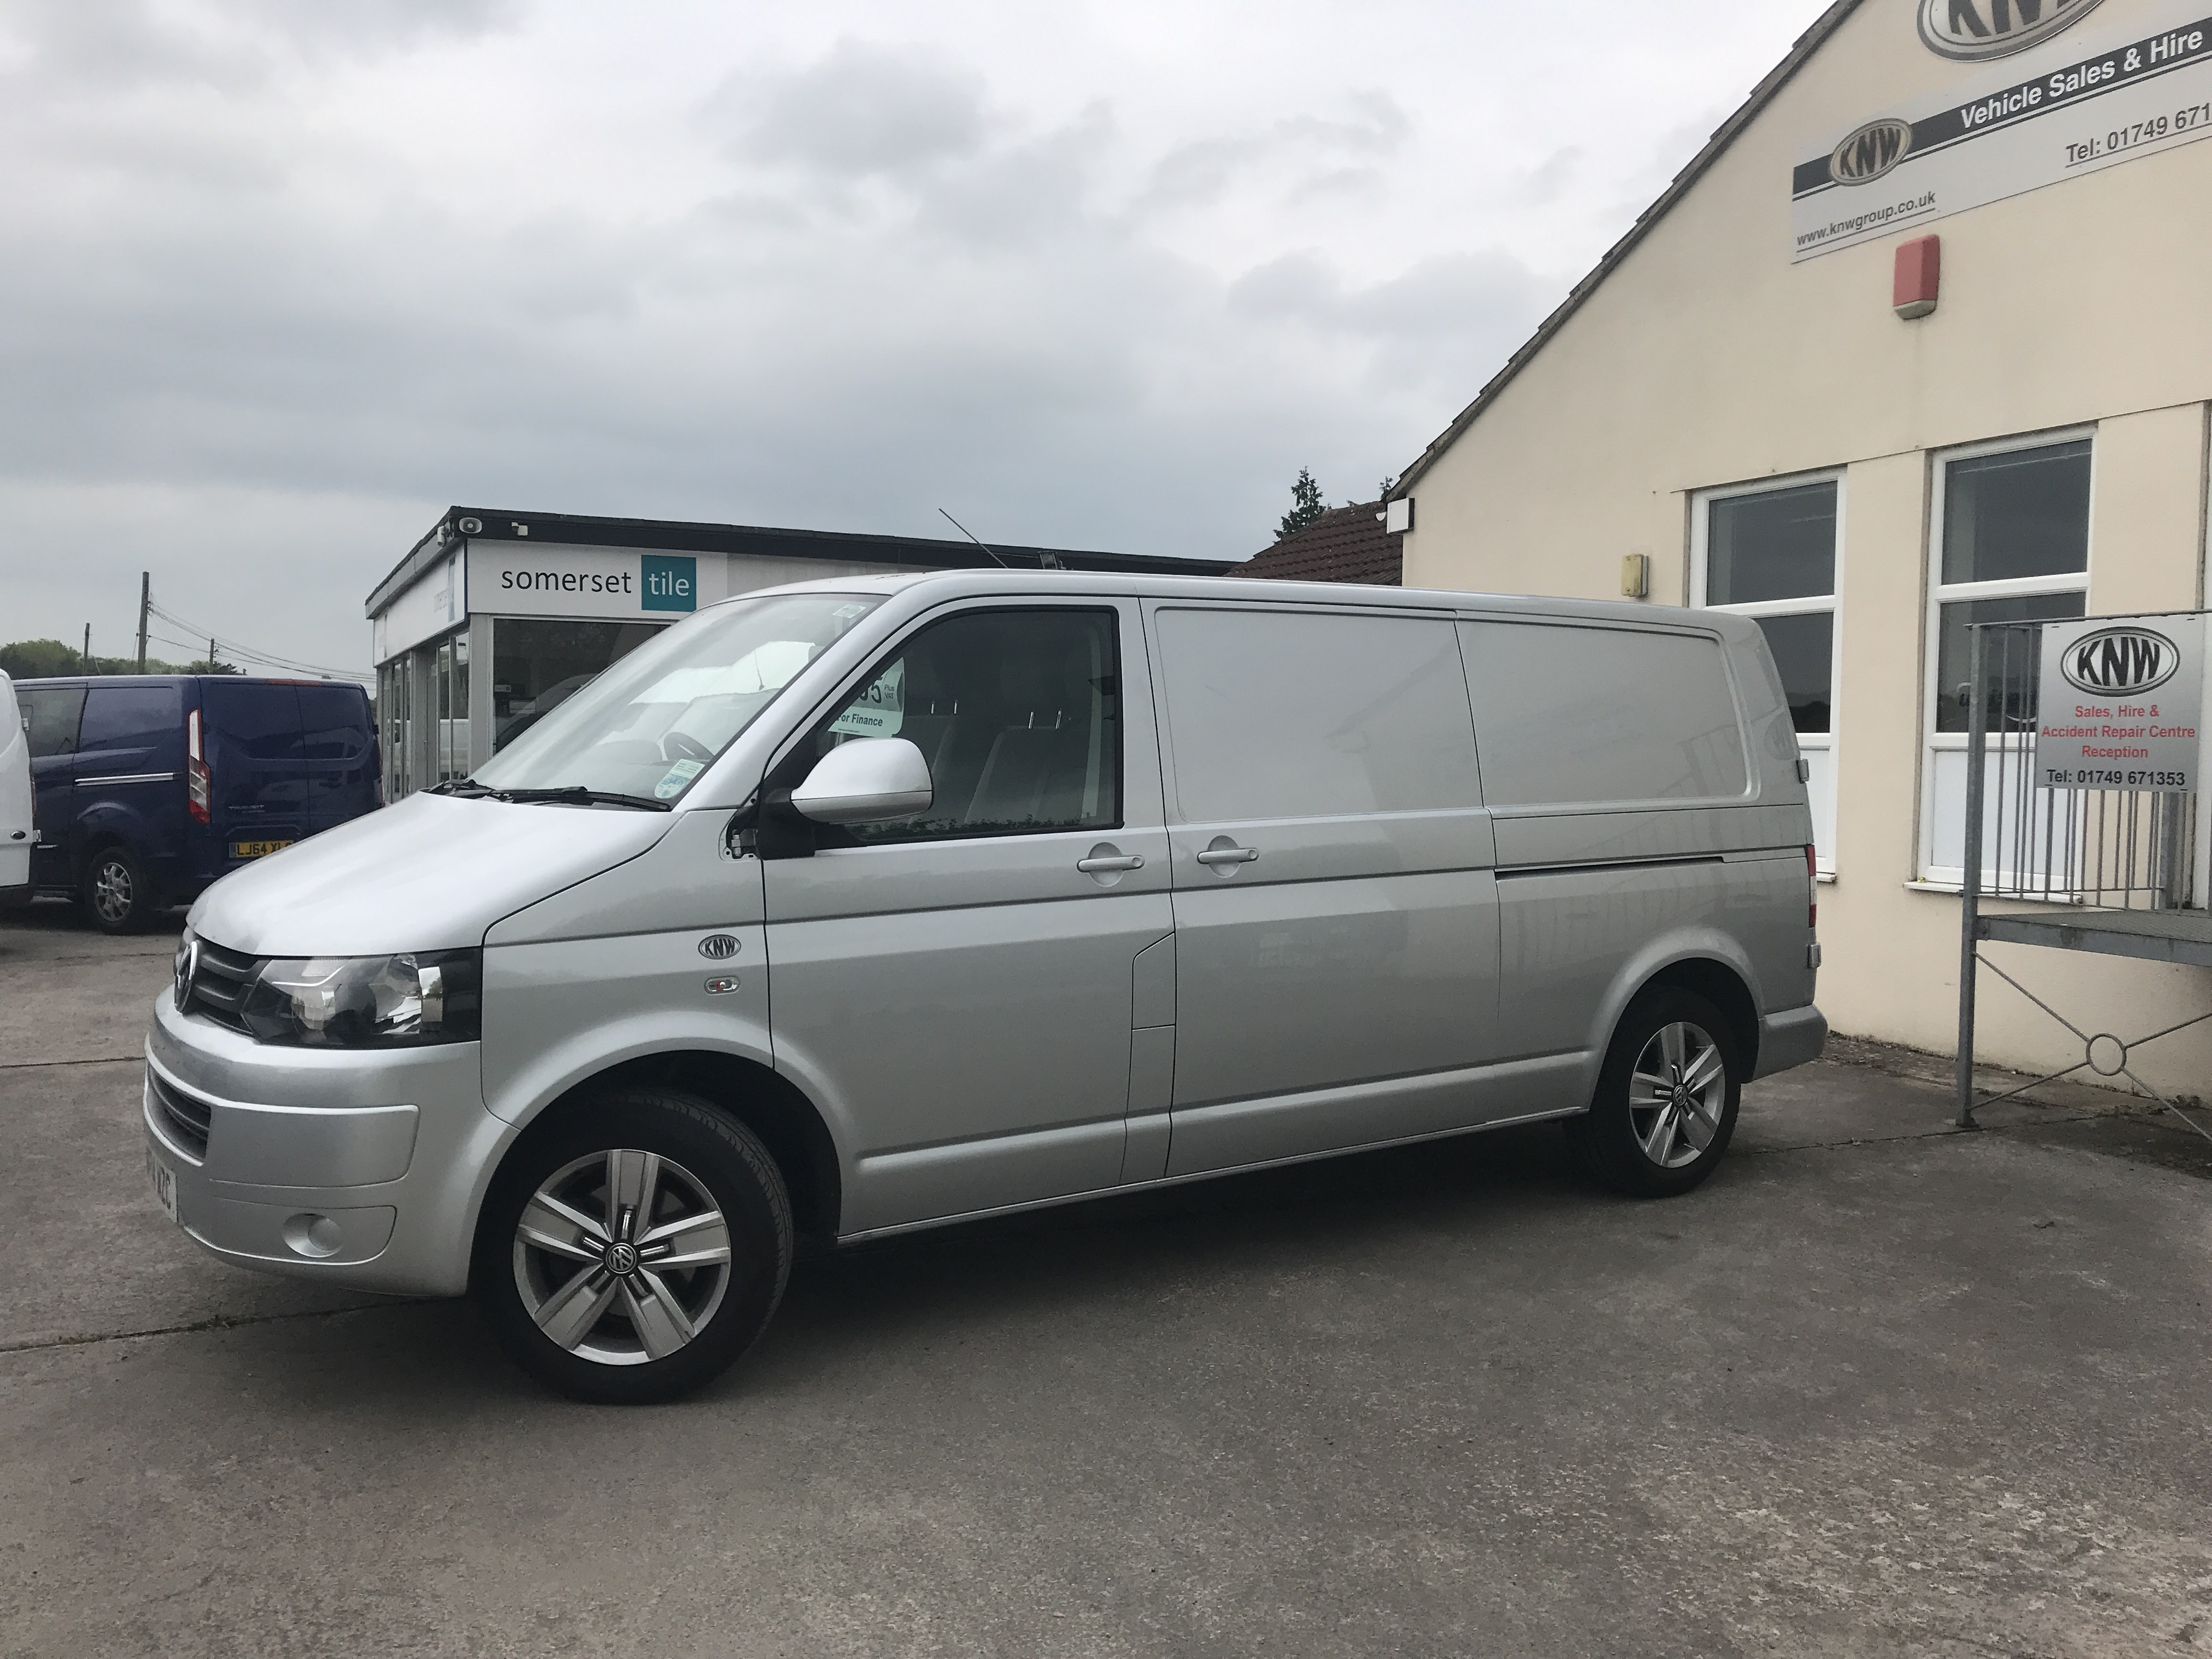 92e88c2ad7d6d1 SWB VANS - Ford Transit - VW Transporters. Click to pre-book this vehicle